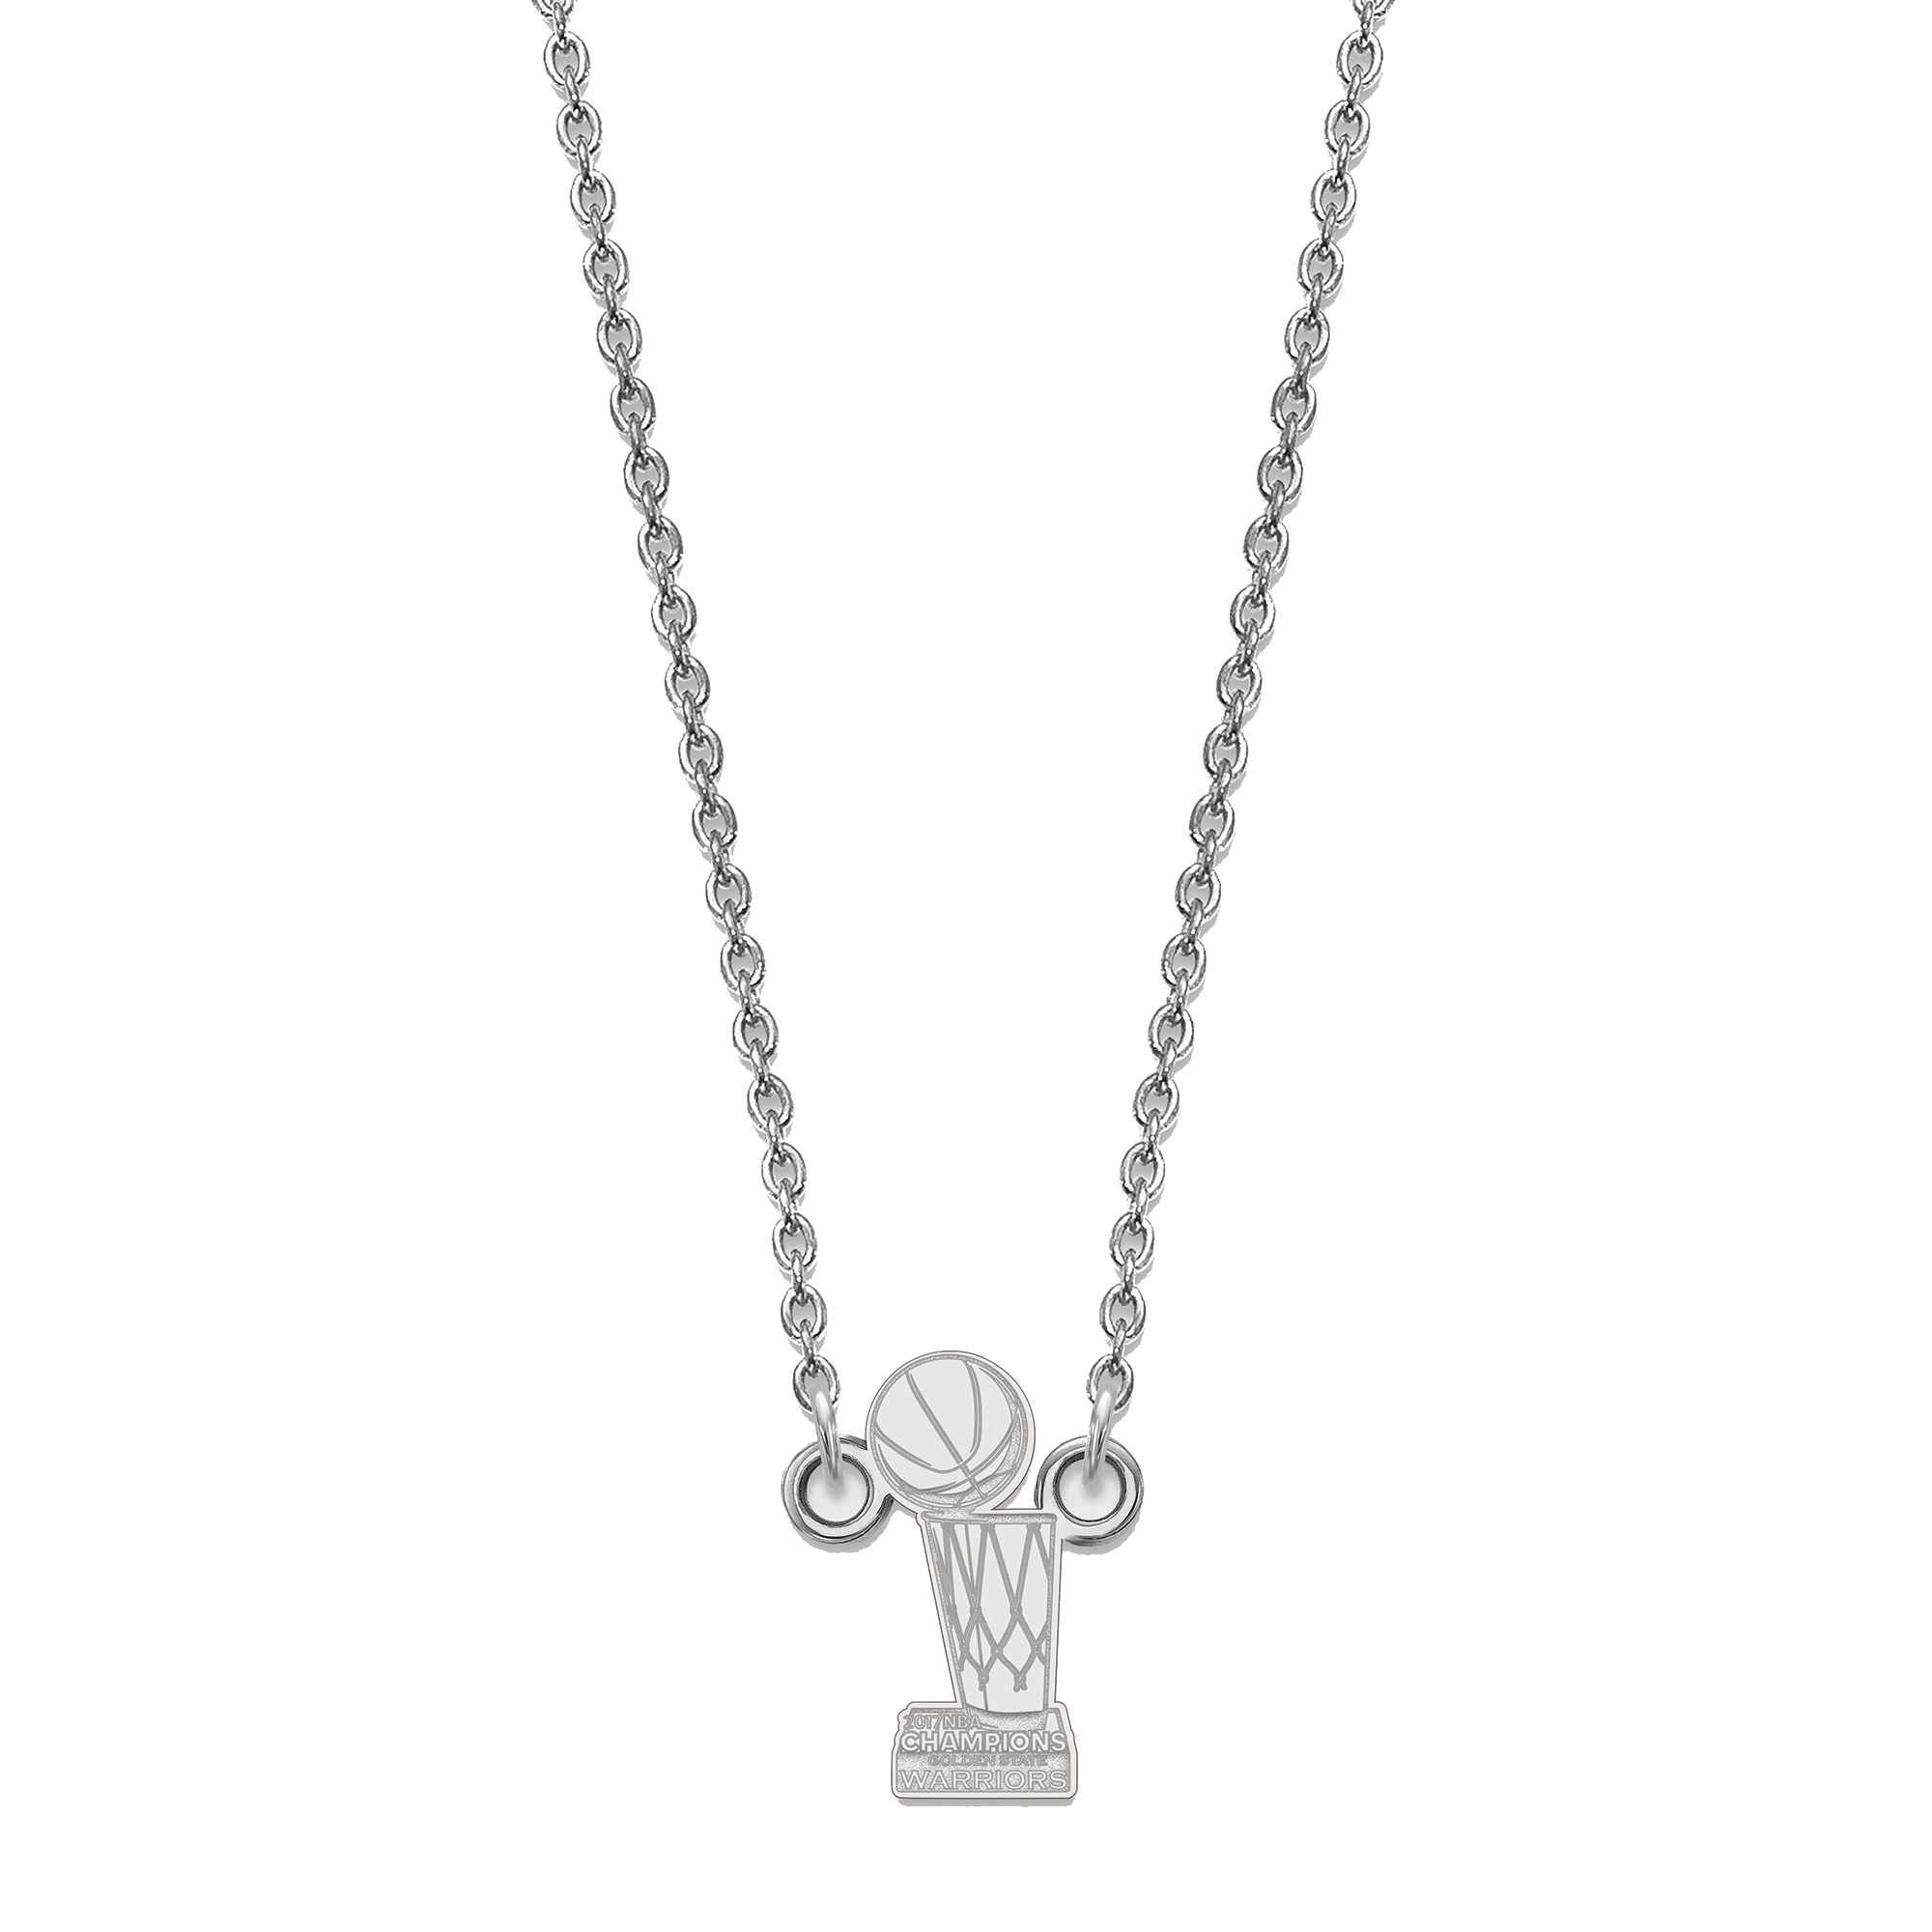 Golden State Warriors Women's 2017 NBA Finals Champions Sterling Silver Necklace - No Size